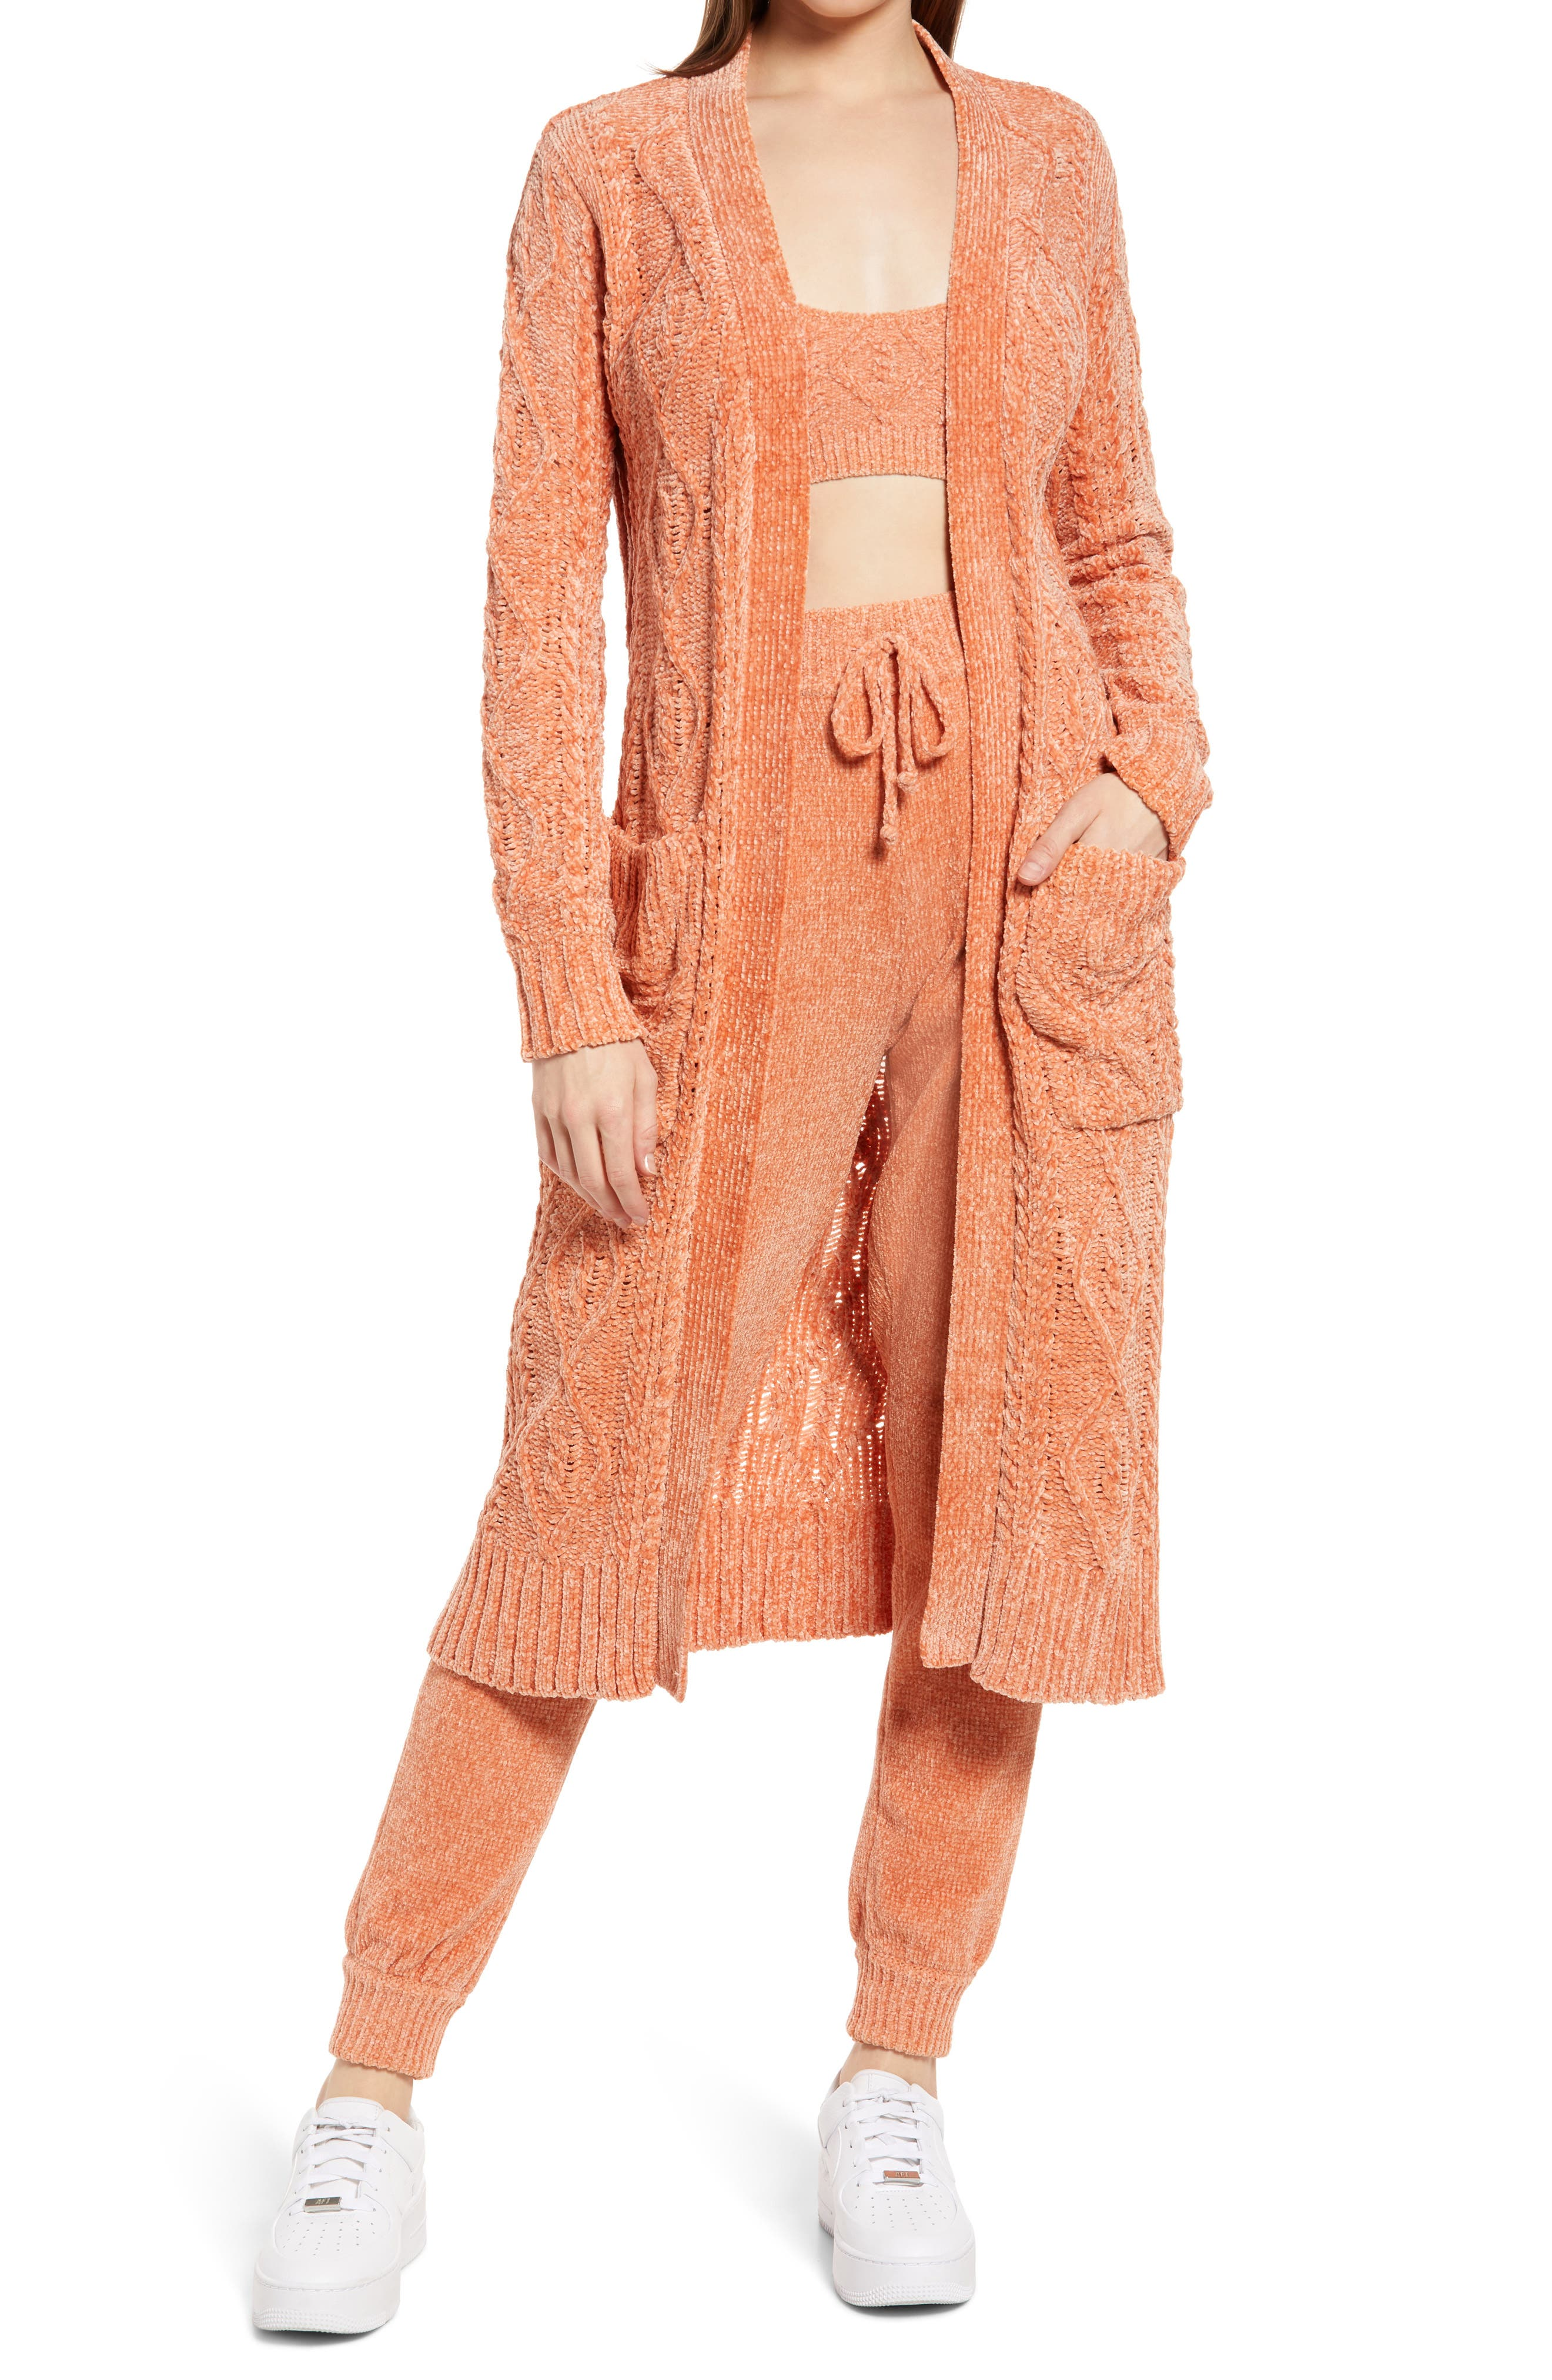 Women's Kendall + Kylie Cable Knit Longline Cardigan